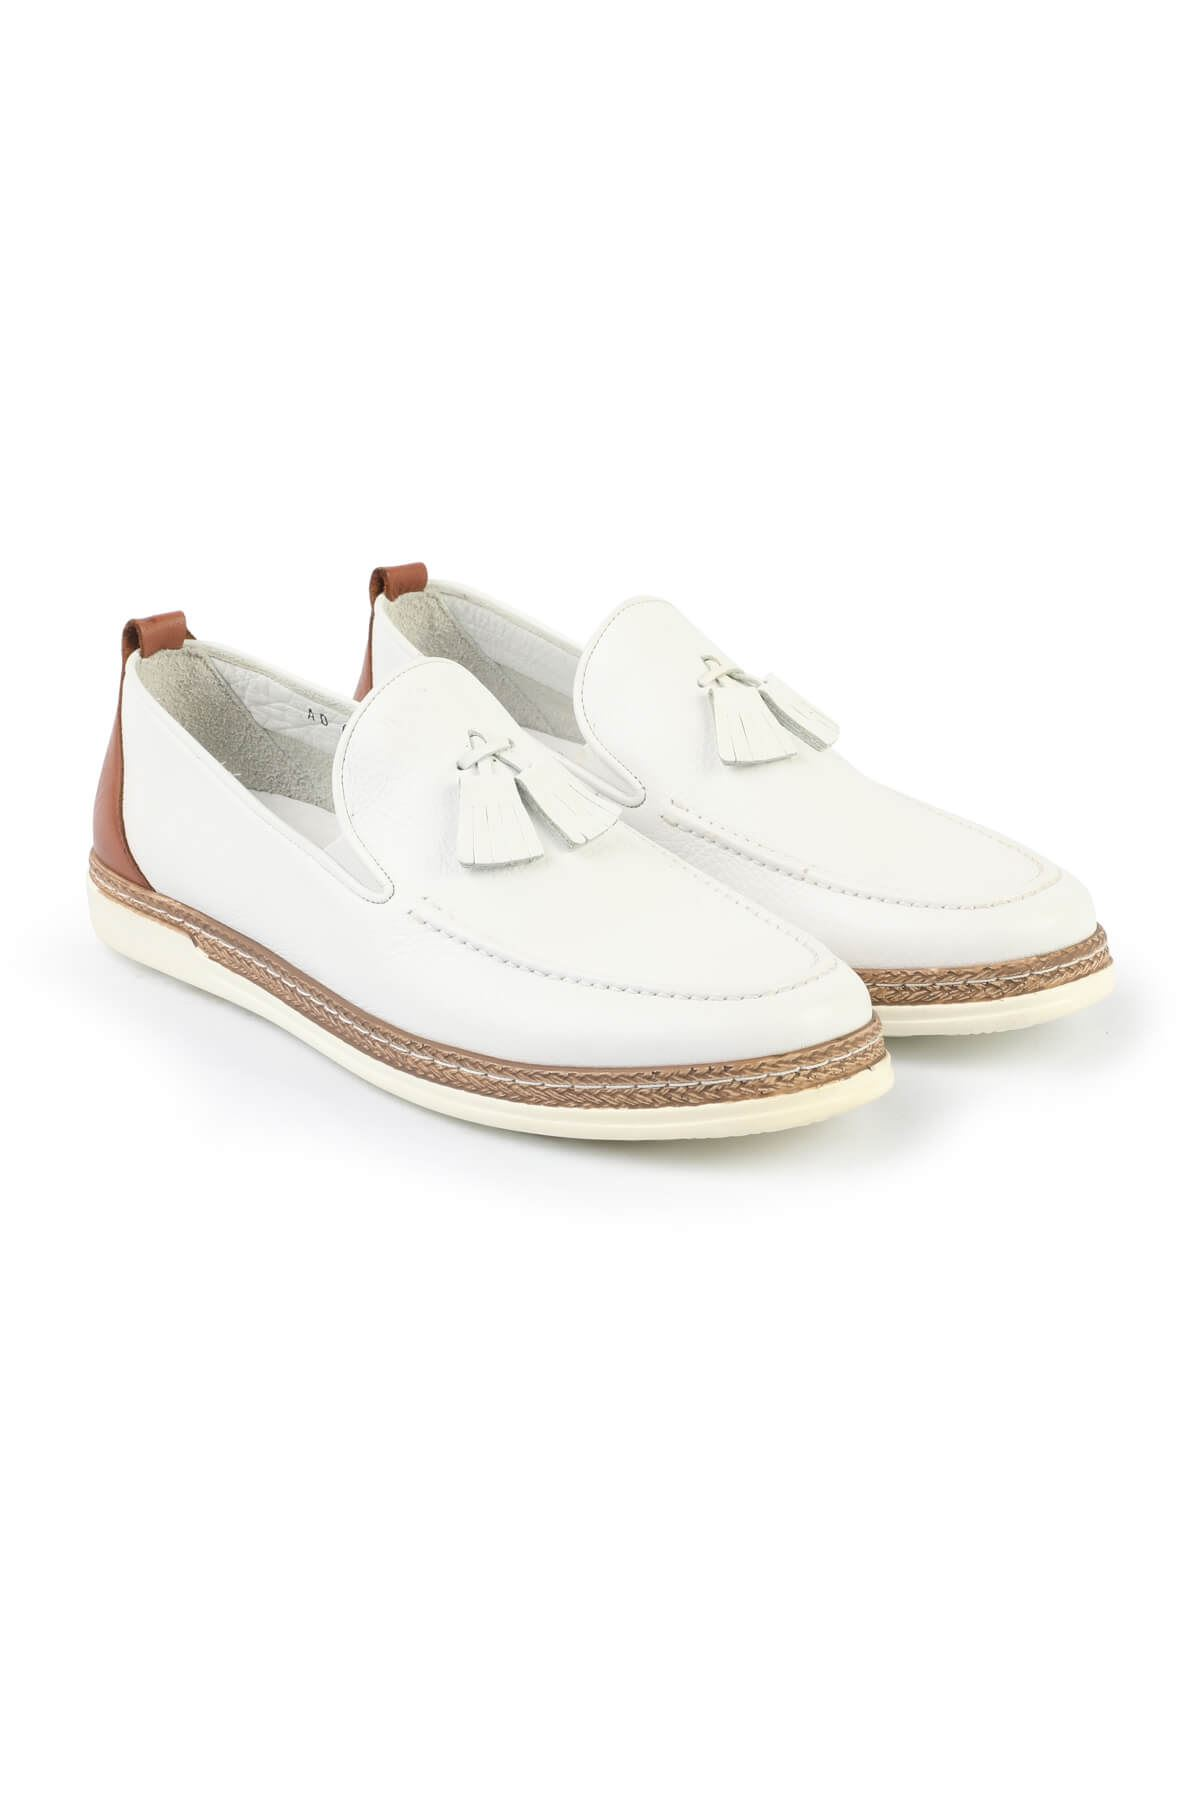 Libero C625 White Loafer Shoes